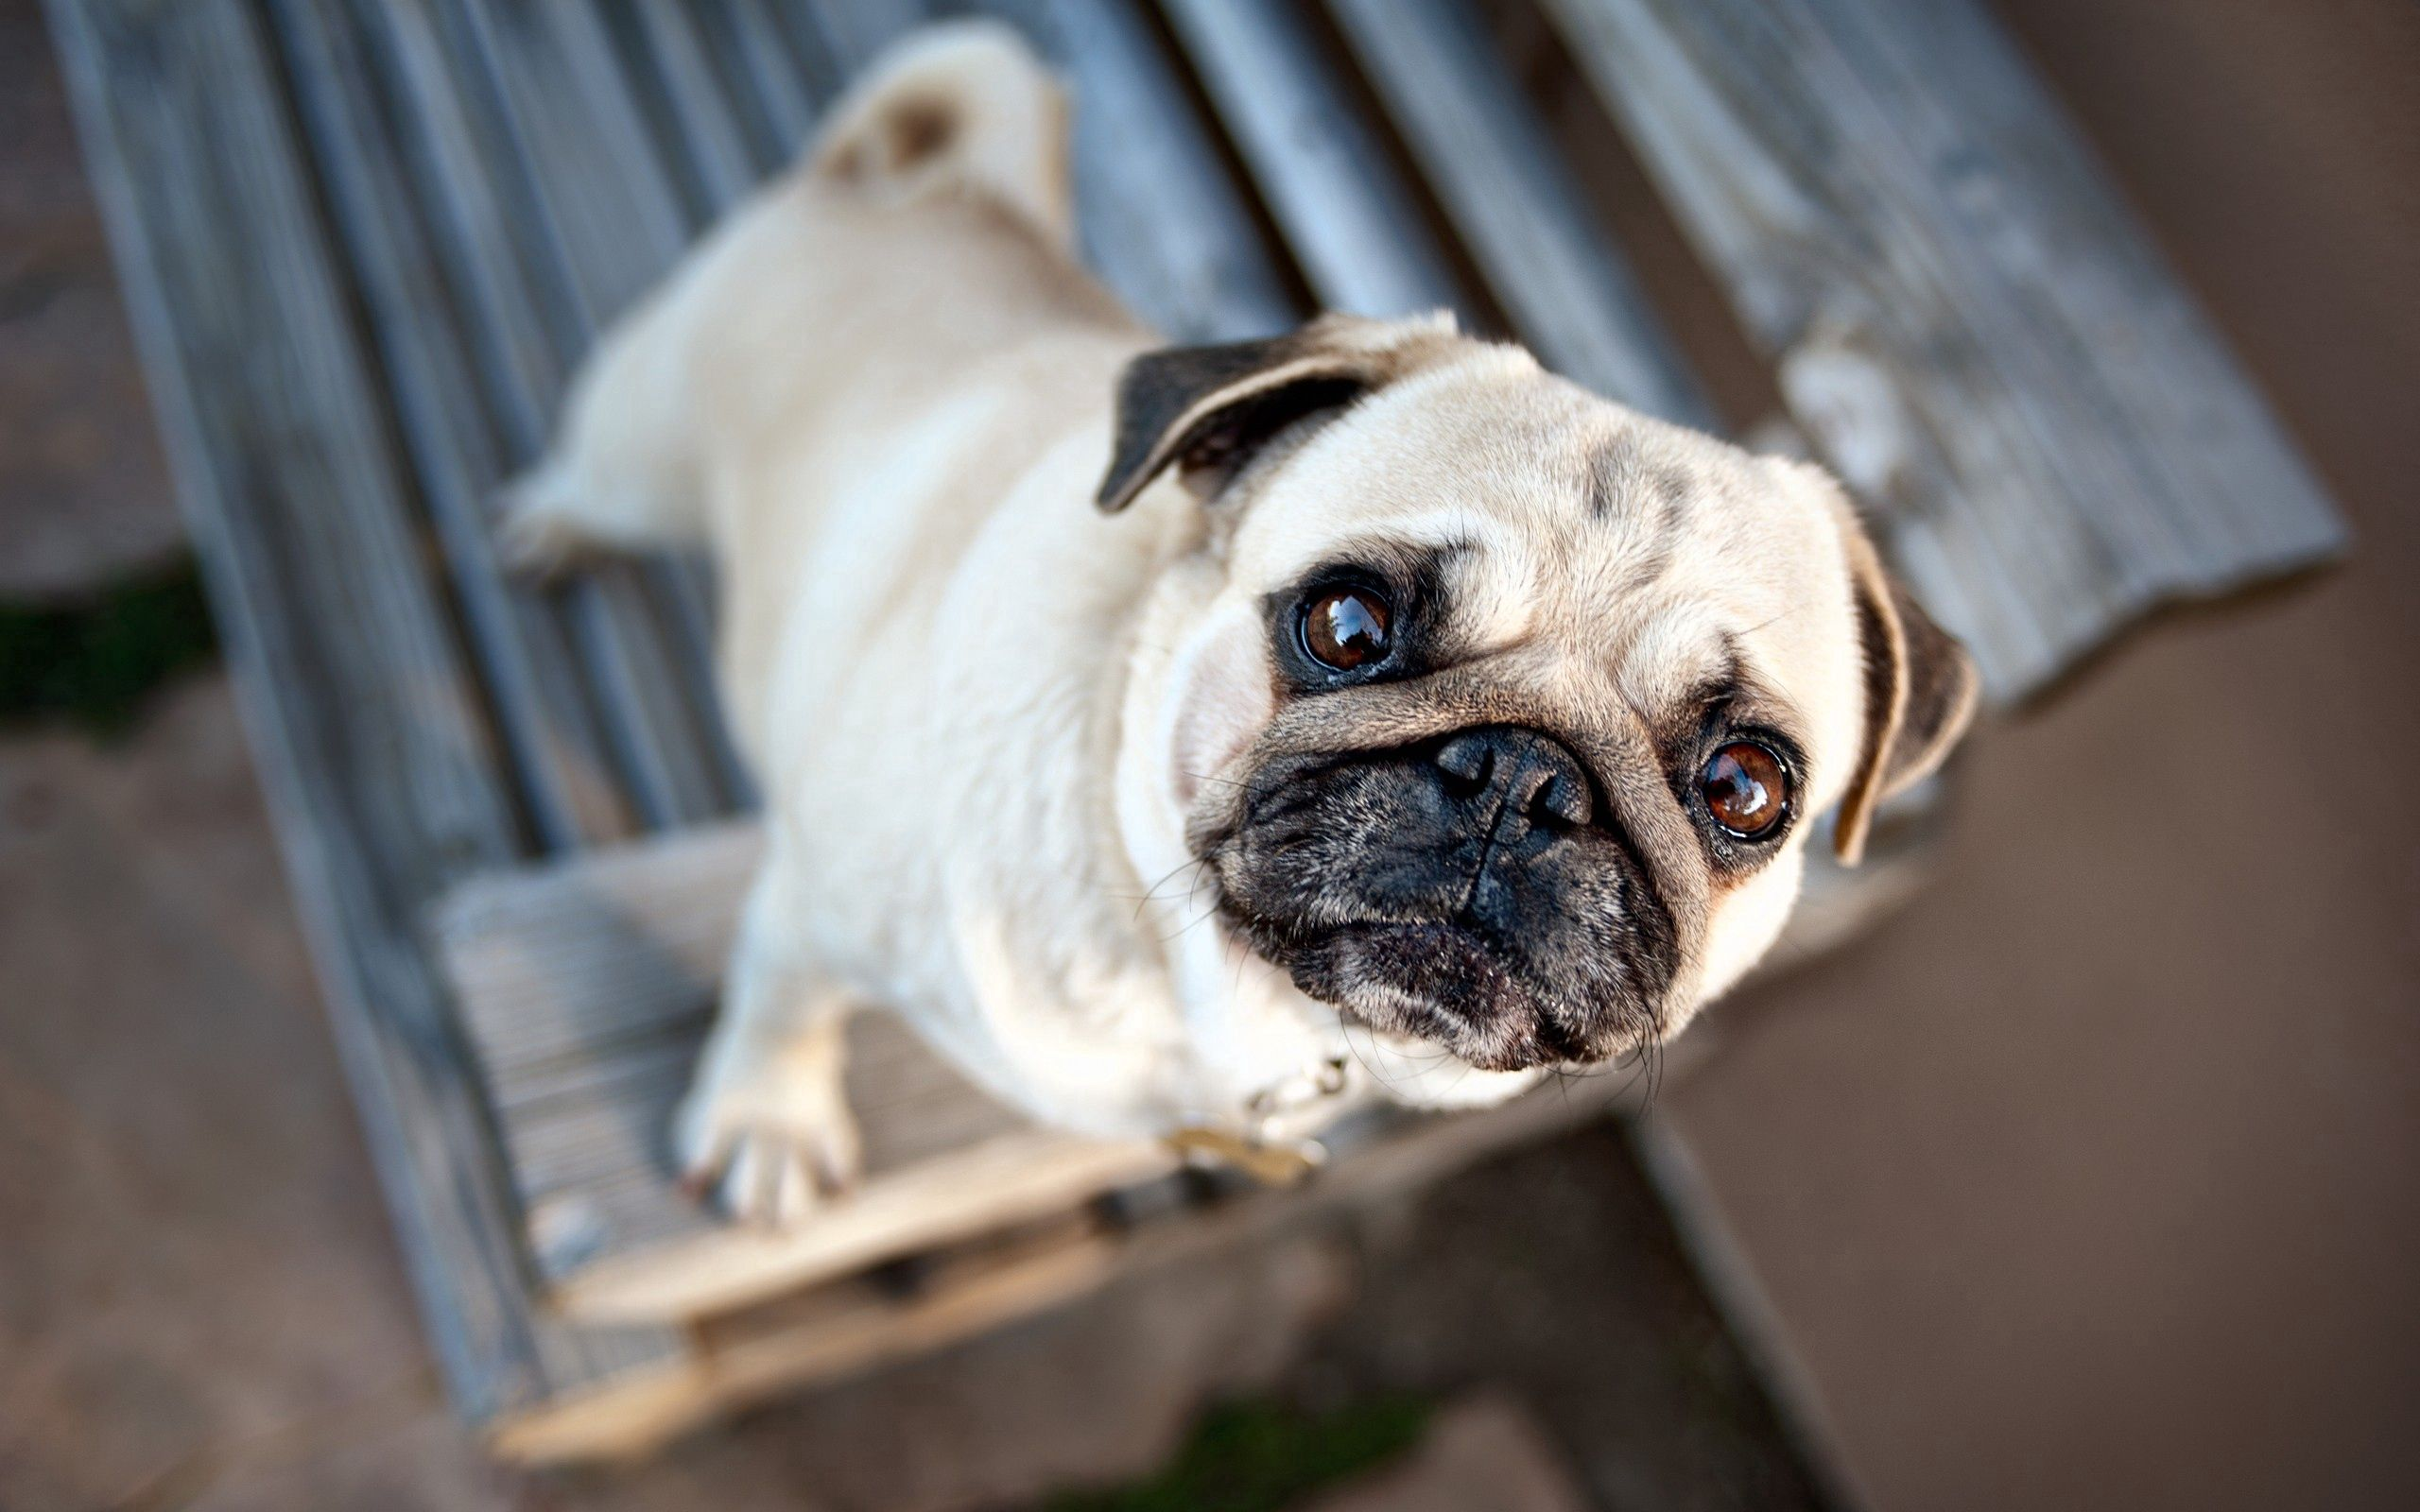 66624 download wallpaper Animals, Pug, Muzzle, Dog, Expectation, Waiting, Puppy screensavers and pictures for free